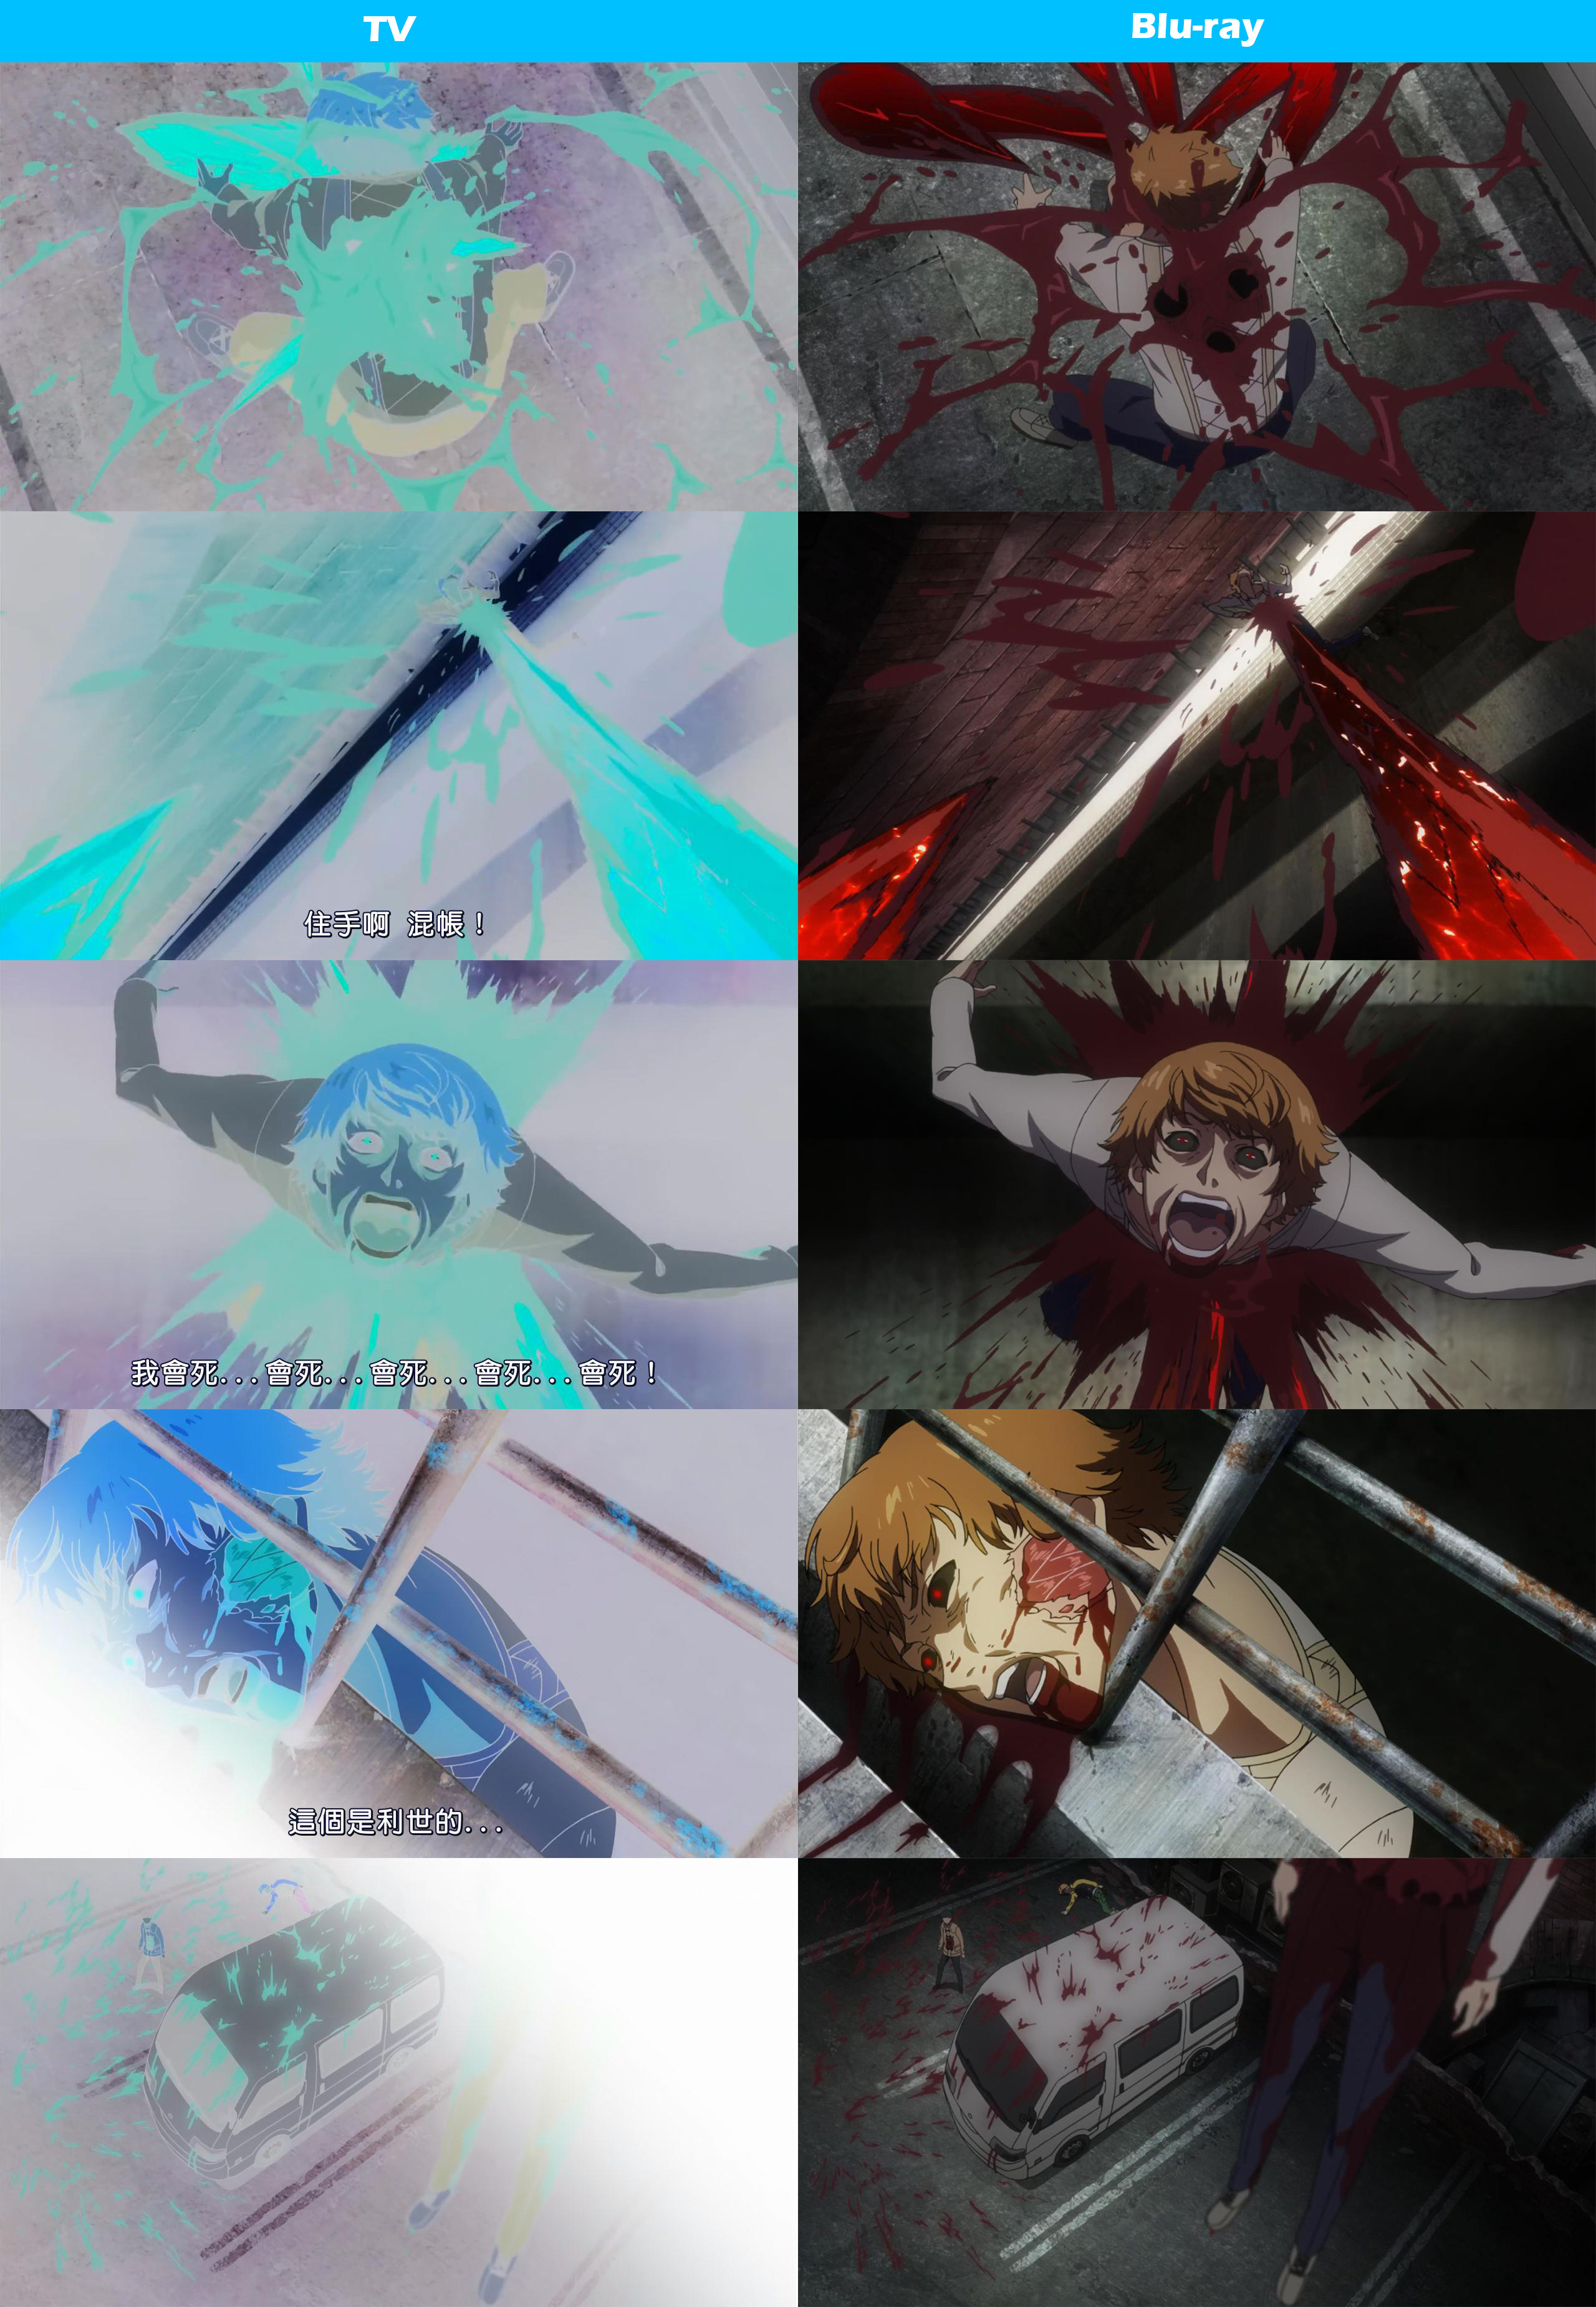 Tokyo-Ghoul_haruhichan.com---TV-and-Blu-ray-Comparison-Image-4